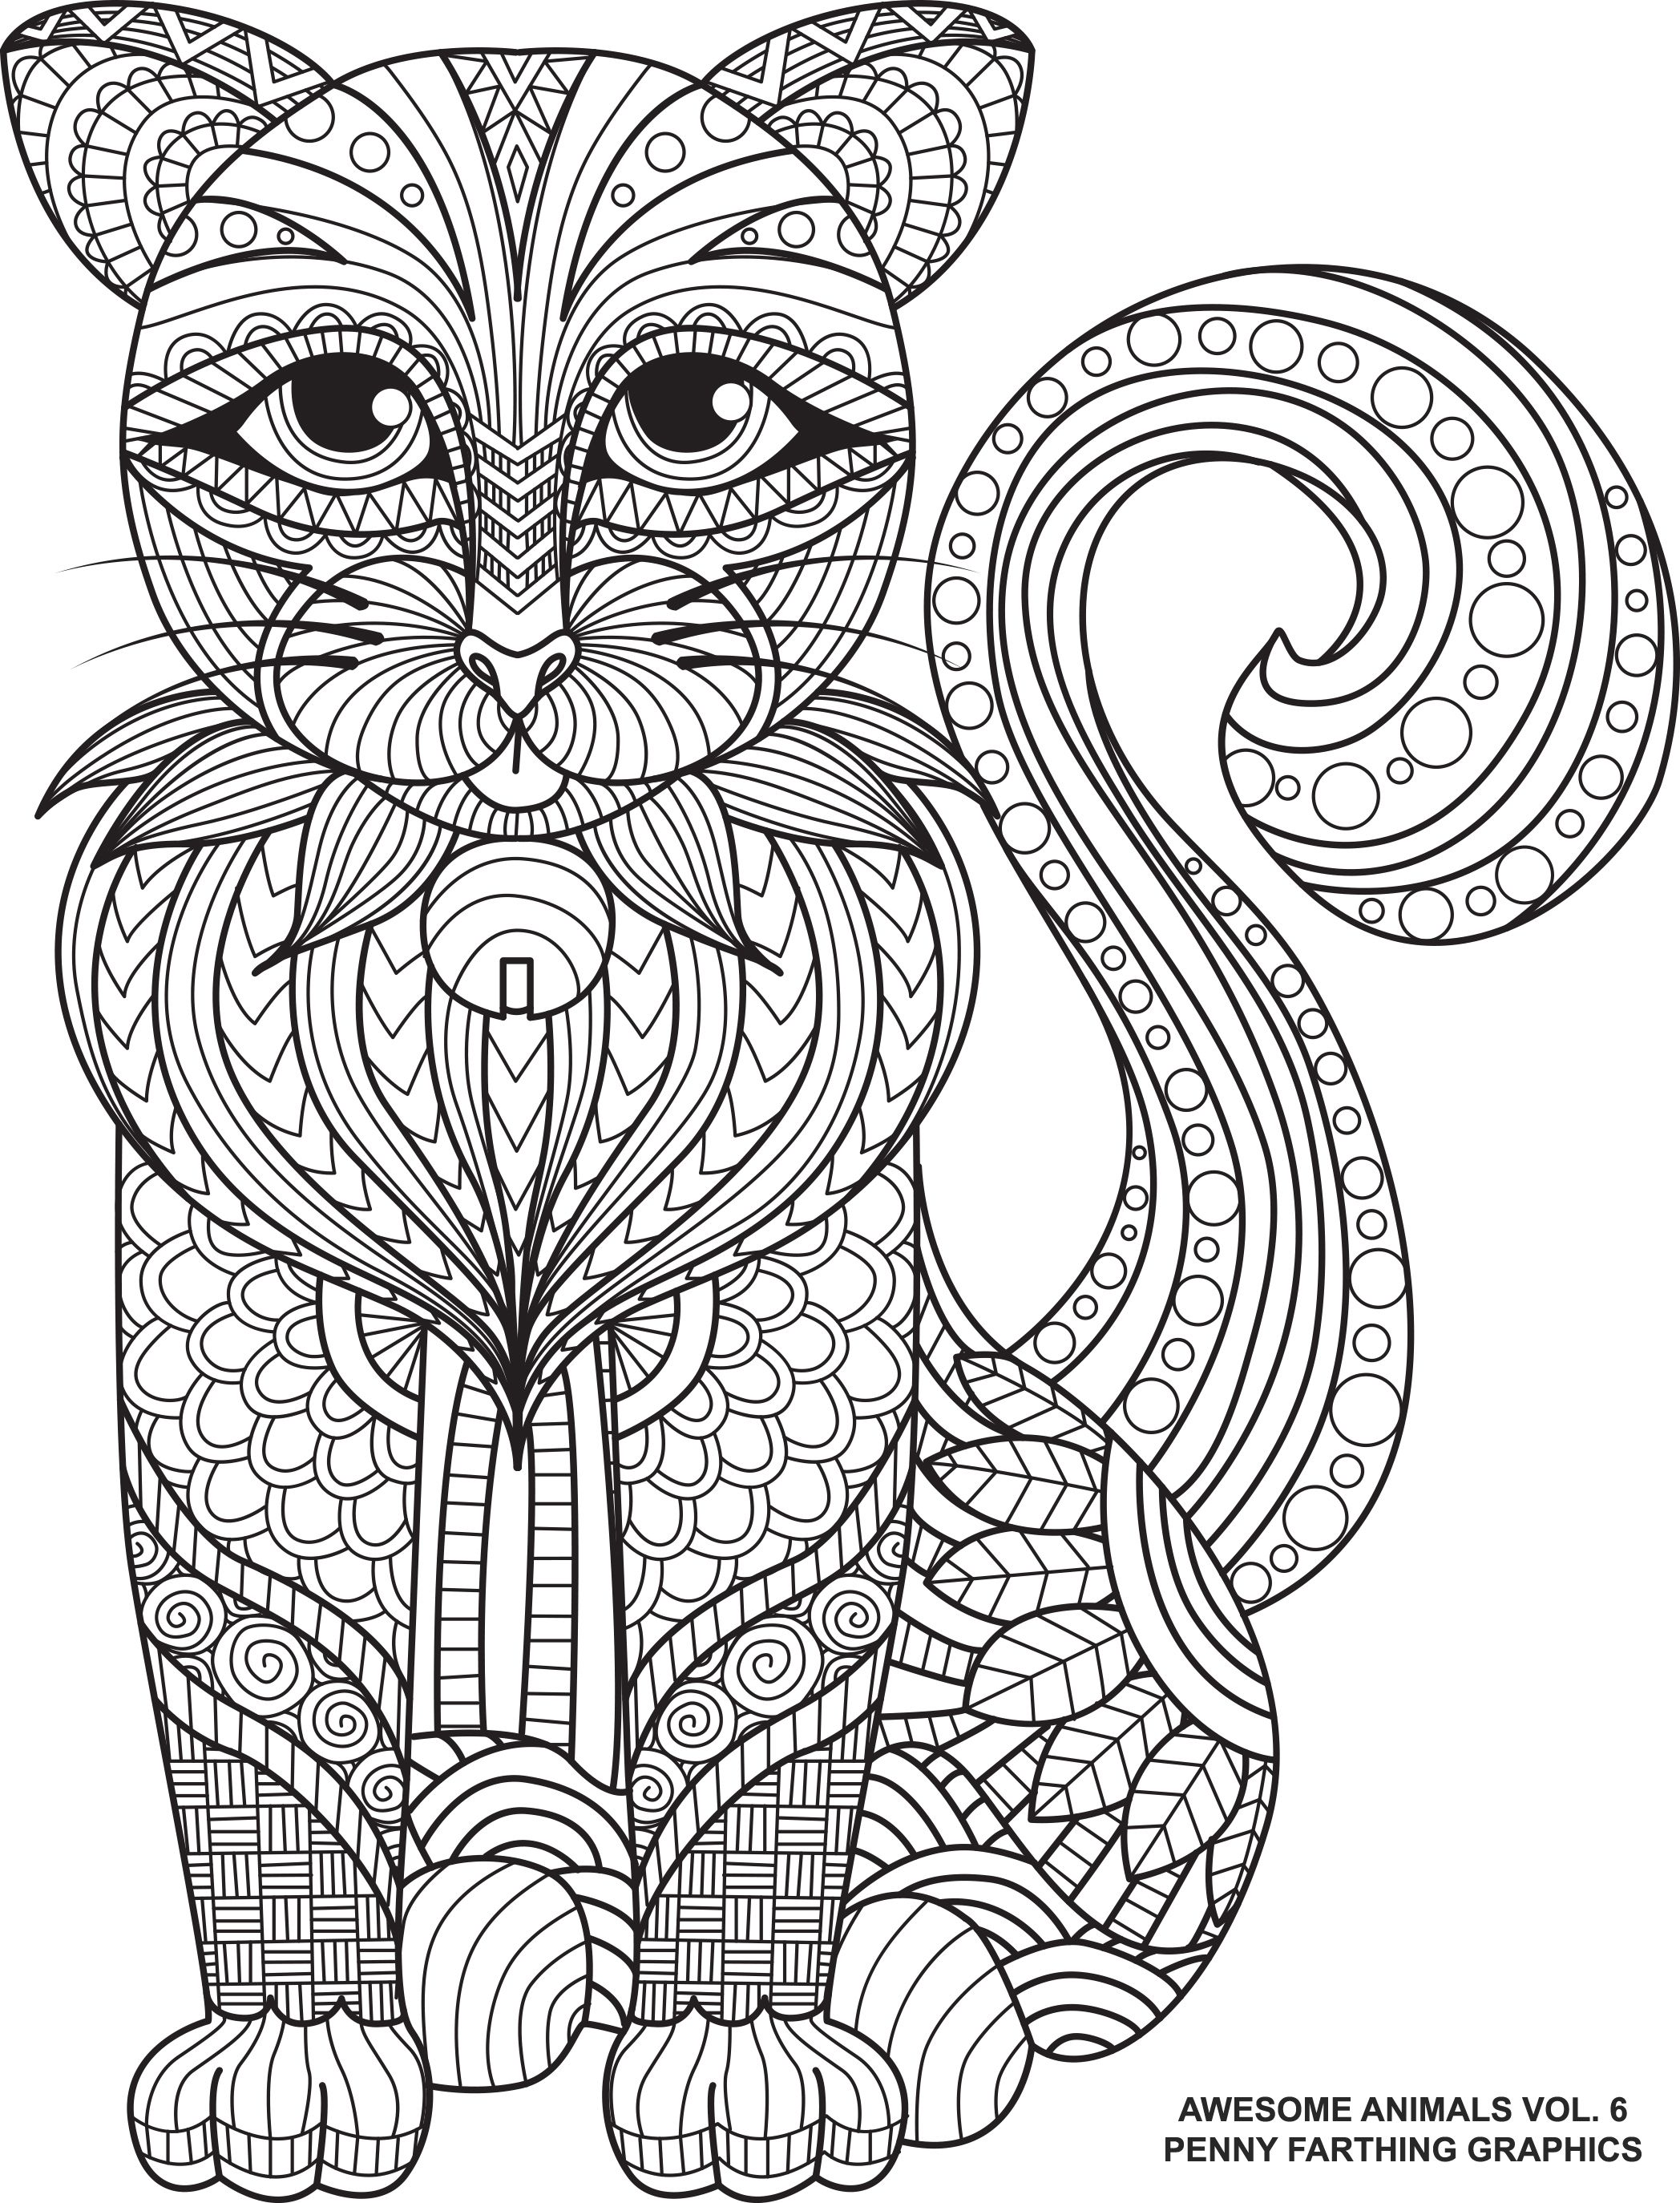 Kostenlose Ausmalbilder Katzen : Cat From Awesome Animals Volume 6 Animal Coloring Books